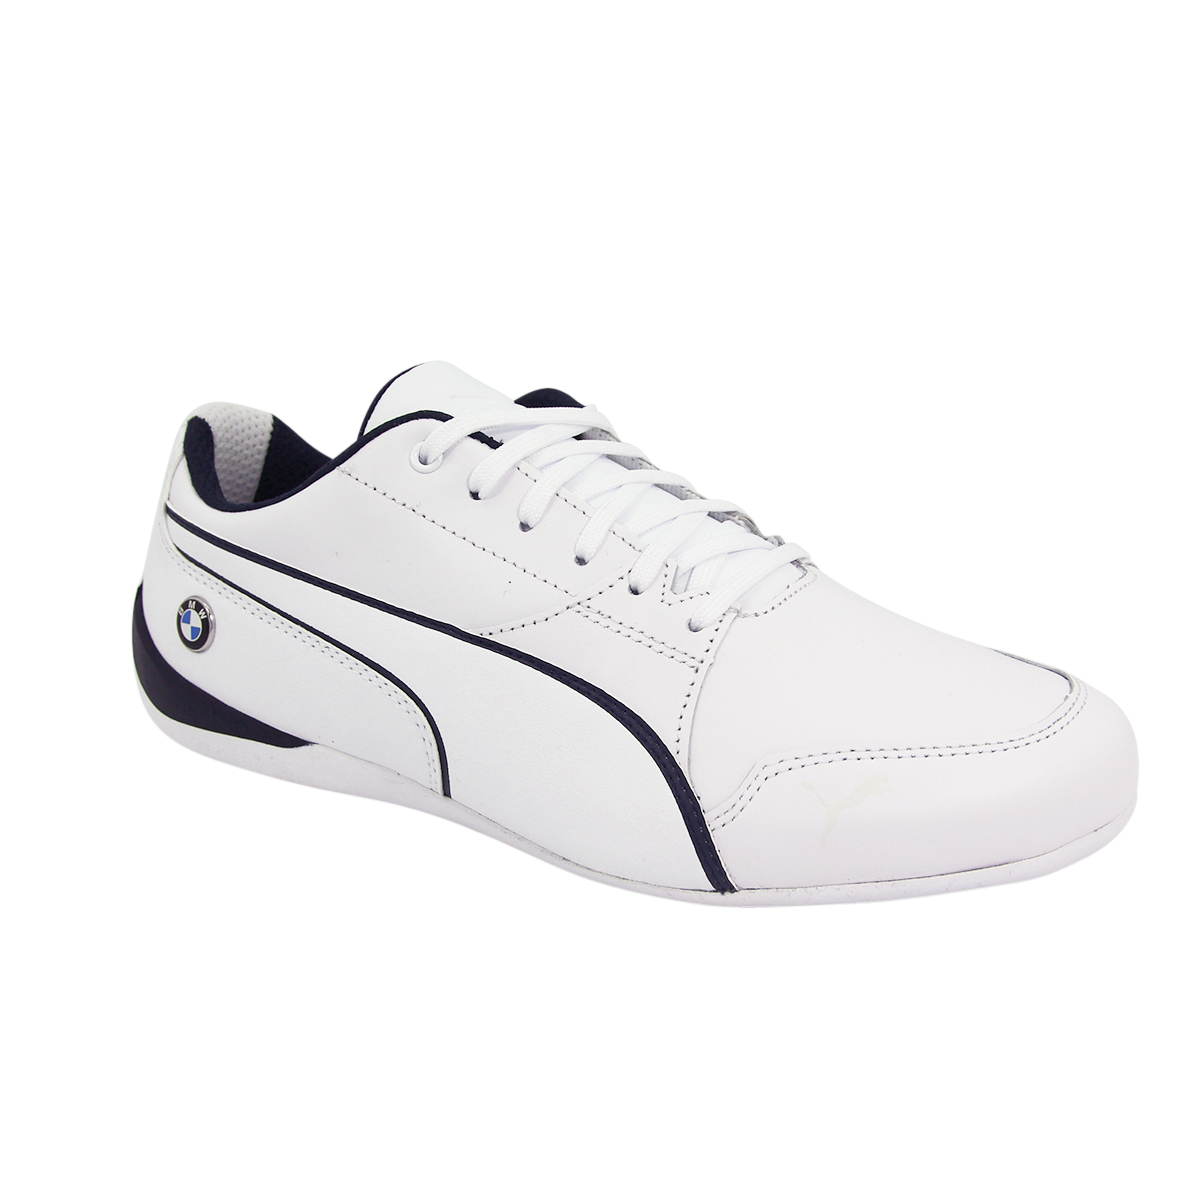 PUMA BMW MS Drift Cat 7 White Team Blue Leather Men Motor Shoes Sneaker  30598602 UK 9. About this product. Picture 1 of 12  Picture 2 of 12 ... 007507bc9